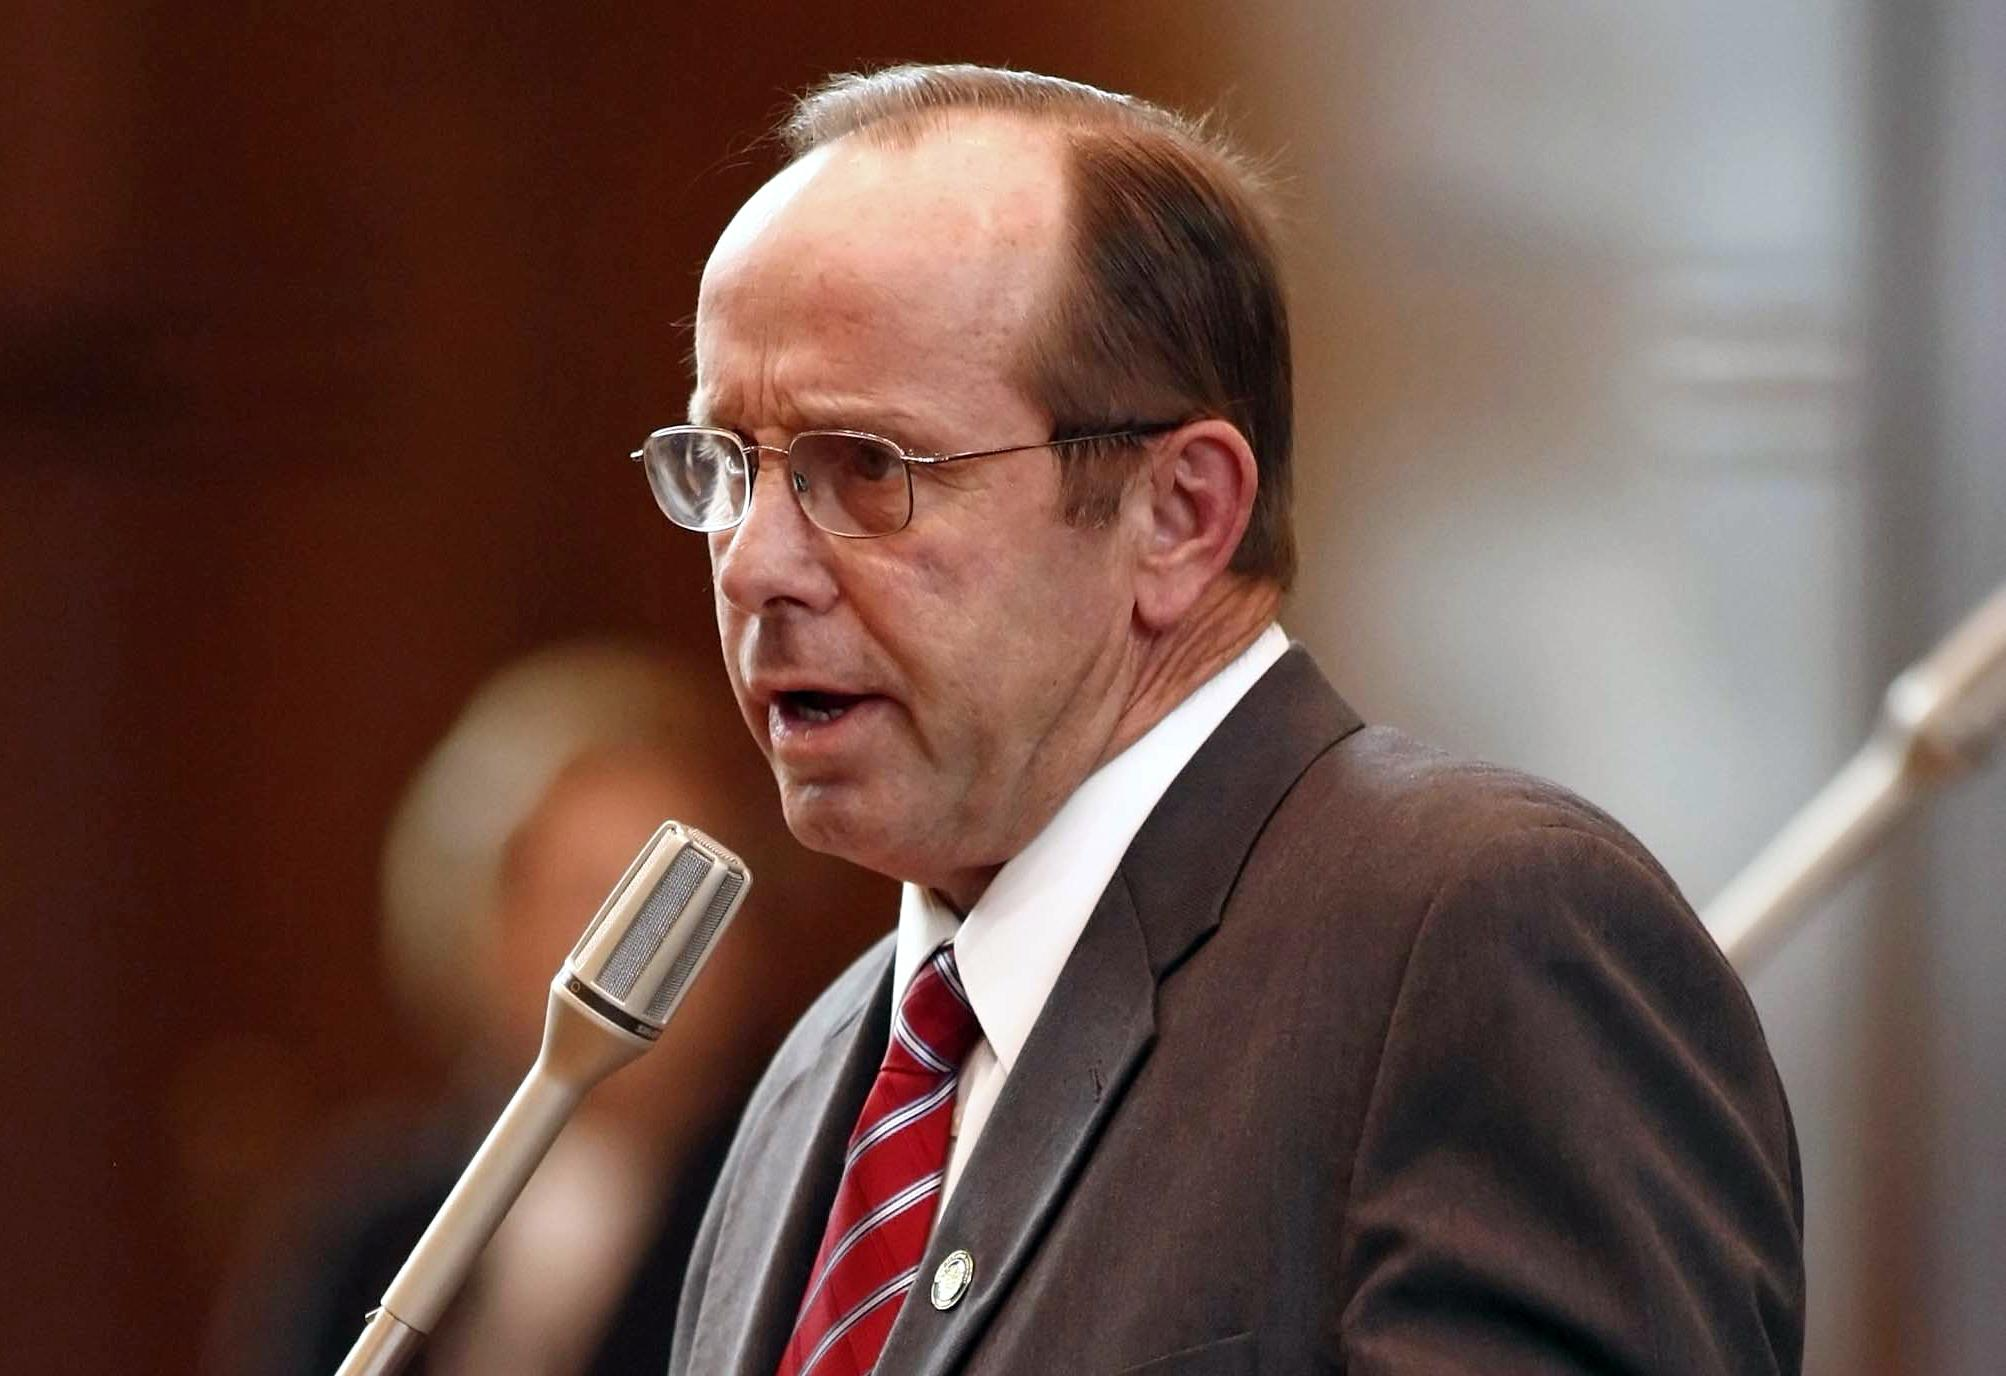 FILE- In this Feb. 14, 2012, file photo, Sen. Jeff Kruse, R-Roseburg, speaks at the Capitol in Salem, Ore. Democratic Sen. Sara Gesler, who accused Kruse of inappropriate touching, said Monday, Oct. 23, 2017, that she heard accounts from other women in the Oregon State Capitol of such behavior by men. Kruse, whose committee assignments were removed last week as a punishment, says he hasn't been informed what he's accused of, and that he's been denied due process. (Timothy J. Gonzalez/Statesman-Journal via AP, File)